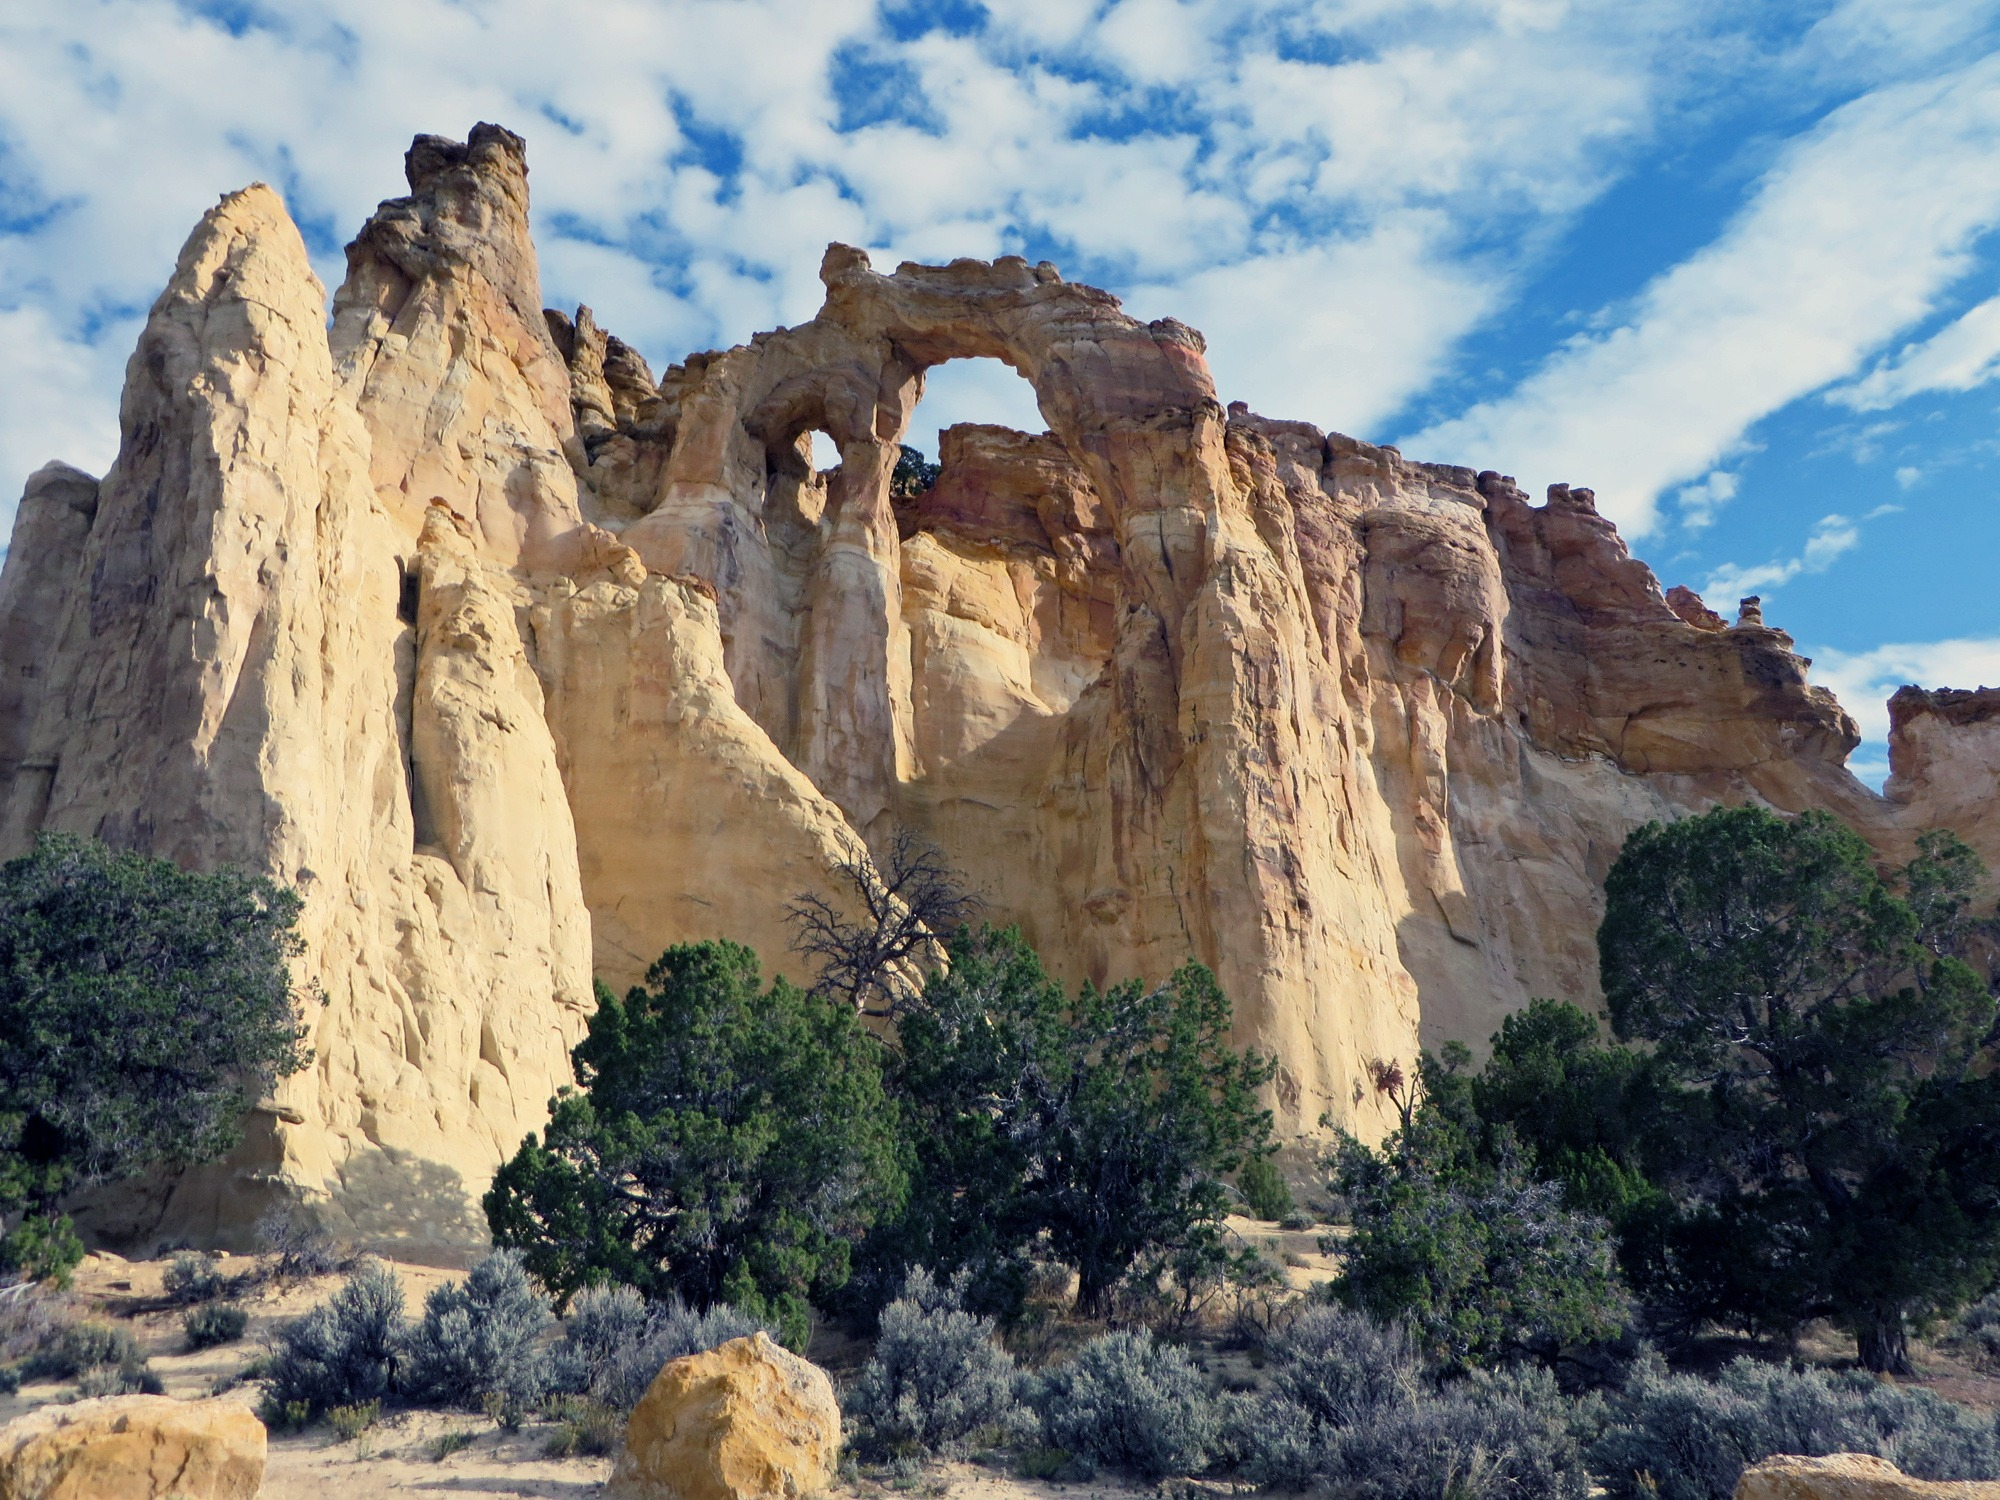 Grosvenor Arch in Grand Staircase-Escalante National Monument